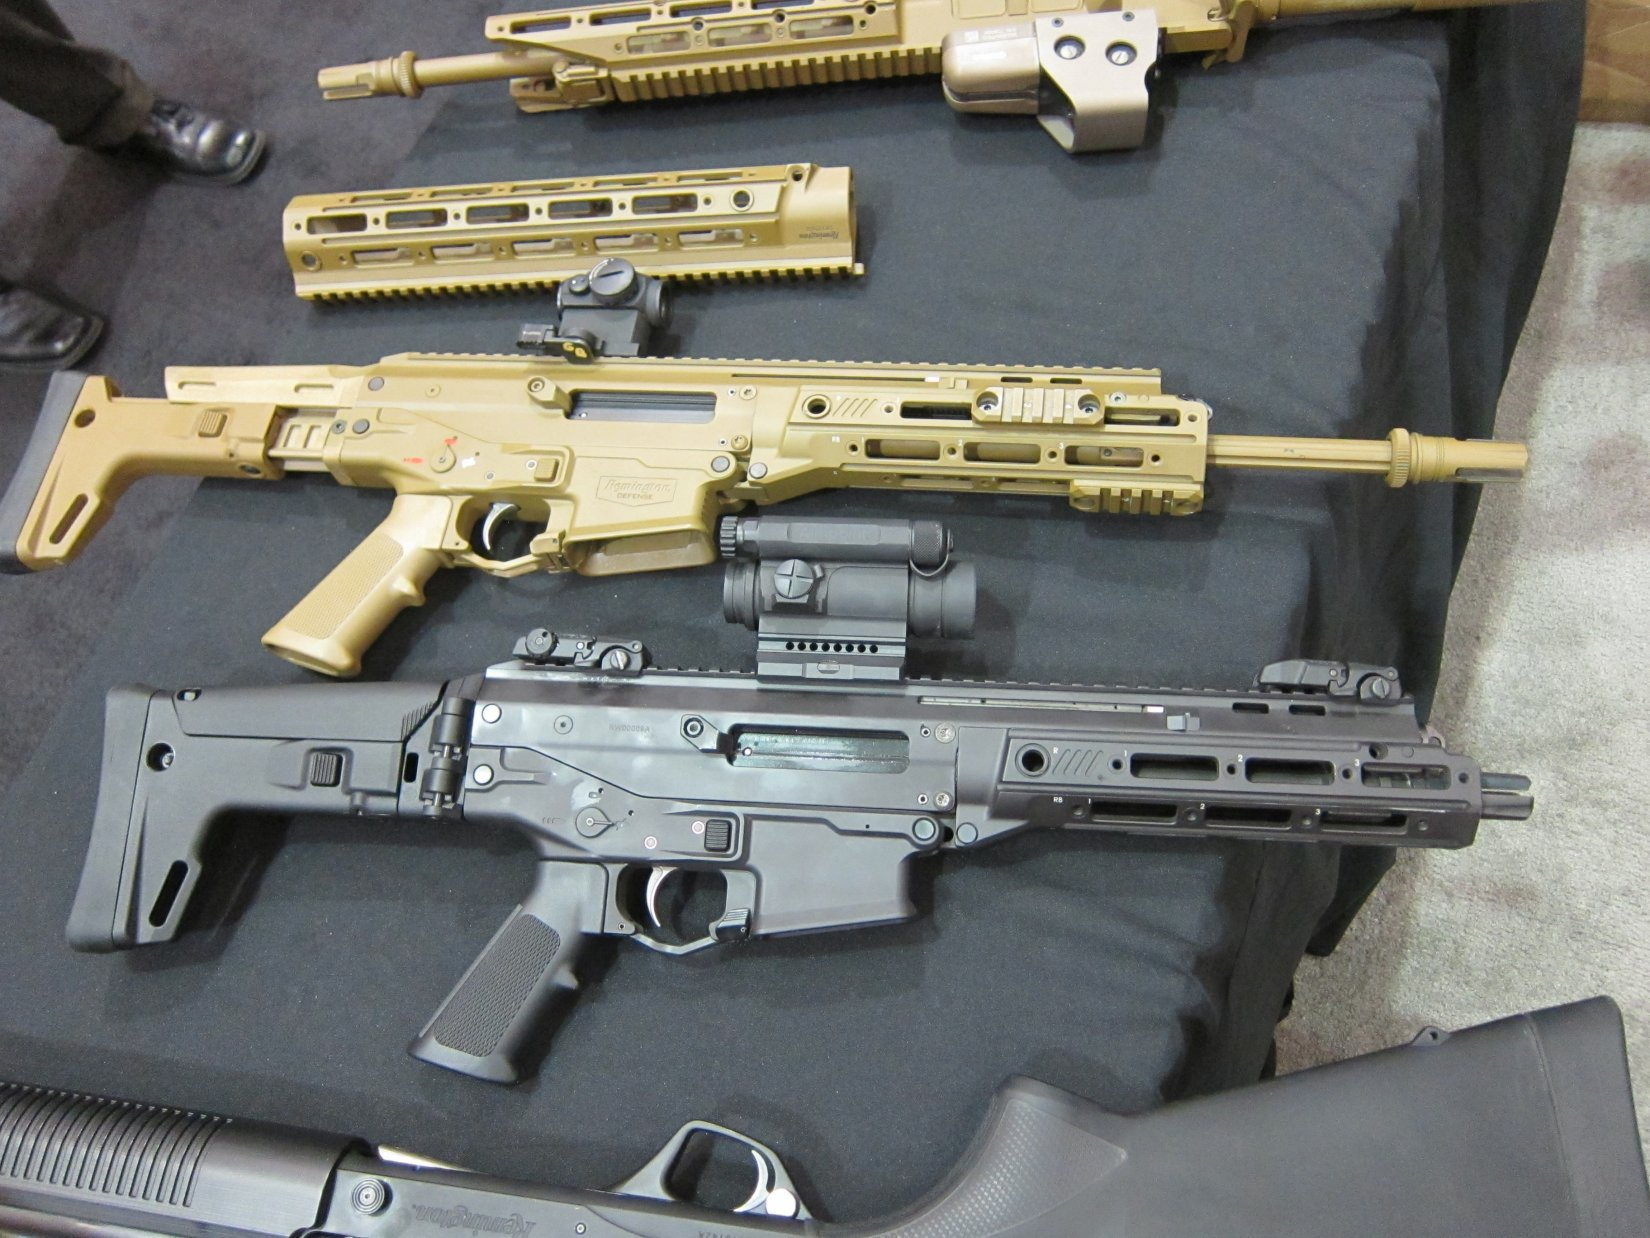 Remington ACR PDW SBR Adaptive Combat Rifle Personal Defense Weapon Short Barreled Rifle and Remington ACR Individual Carbine IC Robby Johnson NDIA Joint Armaments 2012 DefenseReview.com DR 2 Remington ACR PDW SBR (Adaptive Combat Rifle Personal Defense Weapon Short Barreled Rifle) and Remington Individual Carbine (IC) Candidate: Remington Defense Assault Rifles/Carbines/PDWs at NDIA Joint Armaments Conference 2012 (Video!)